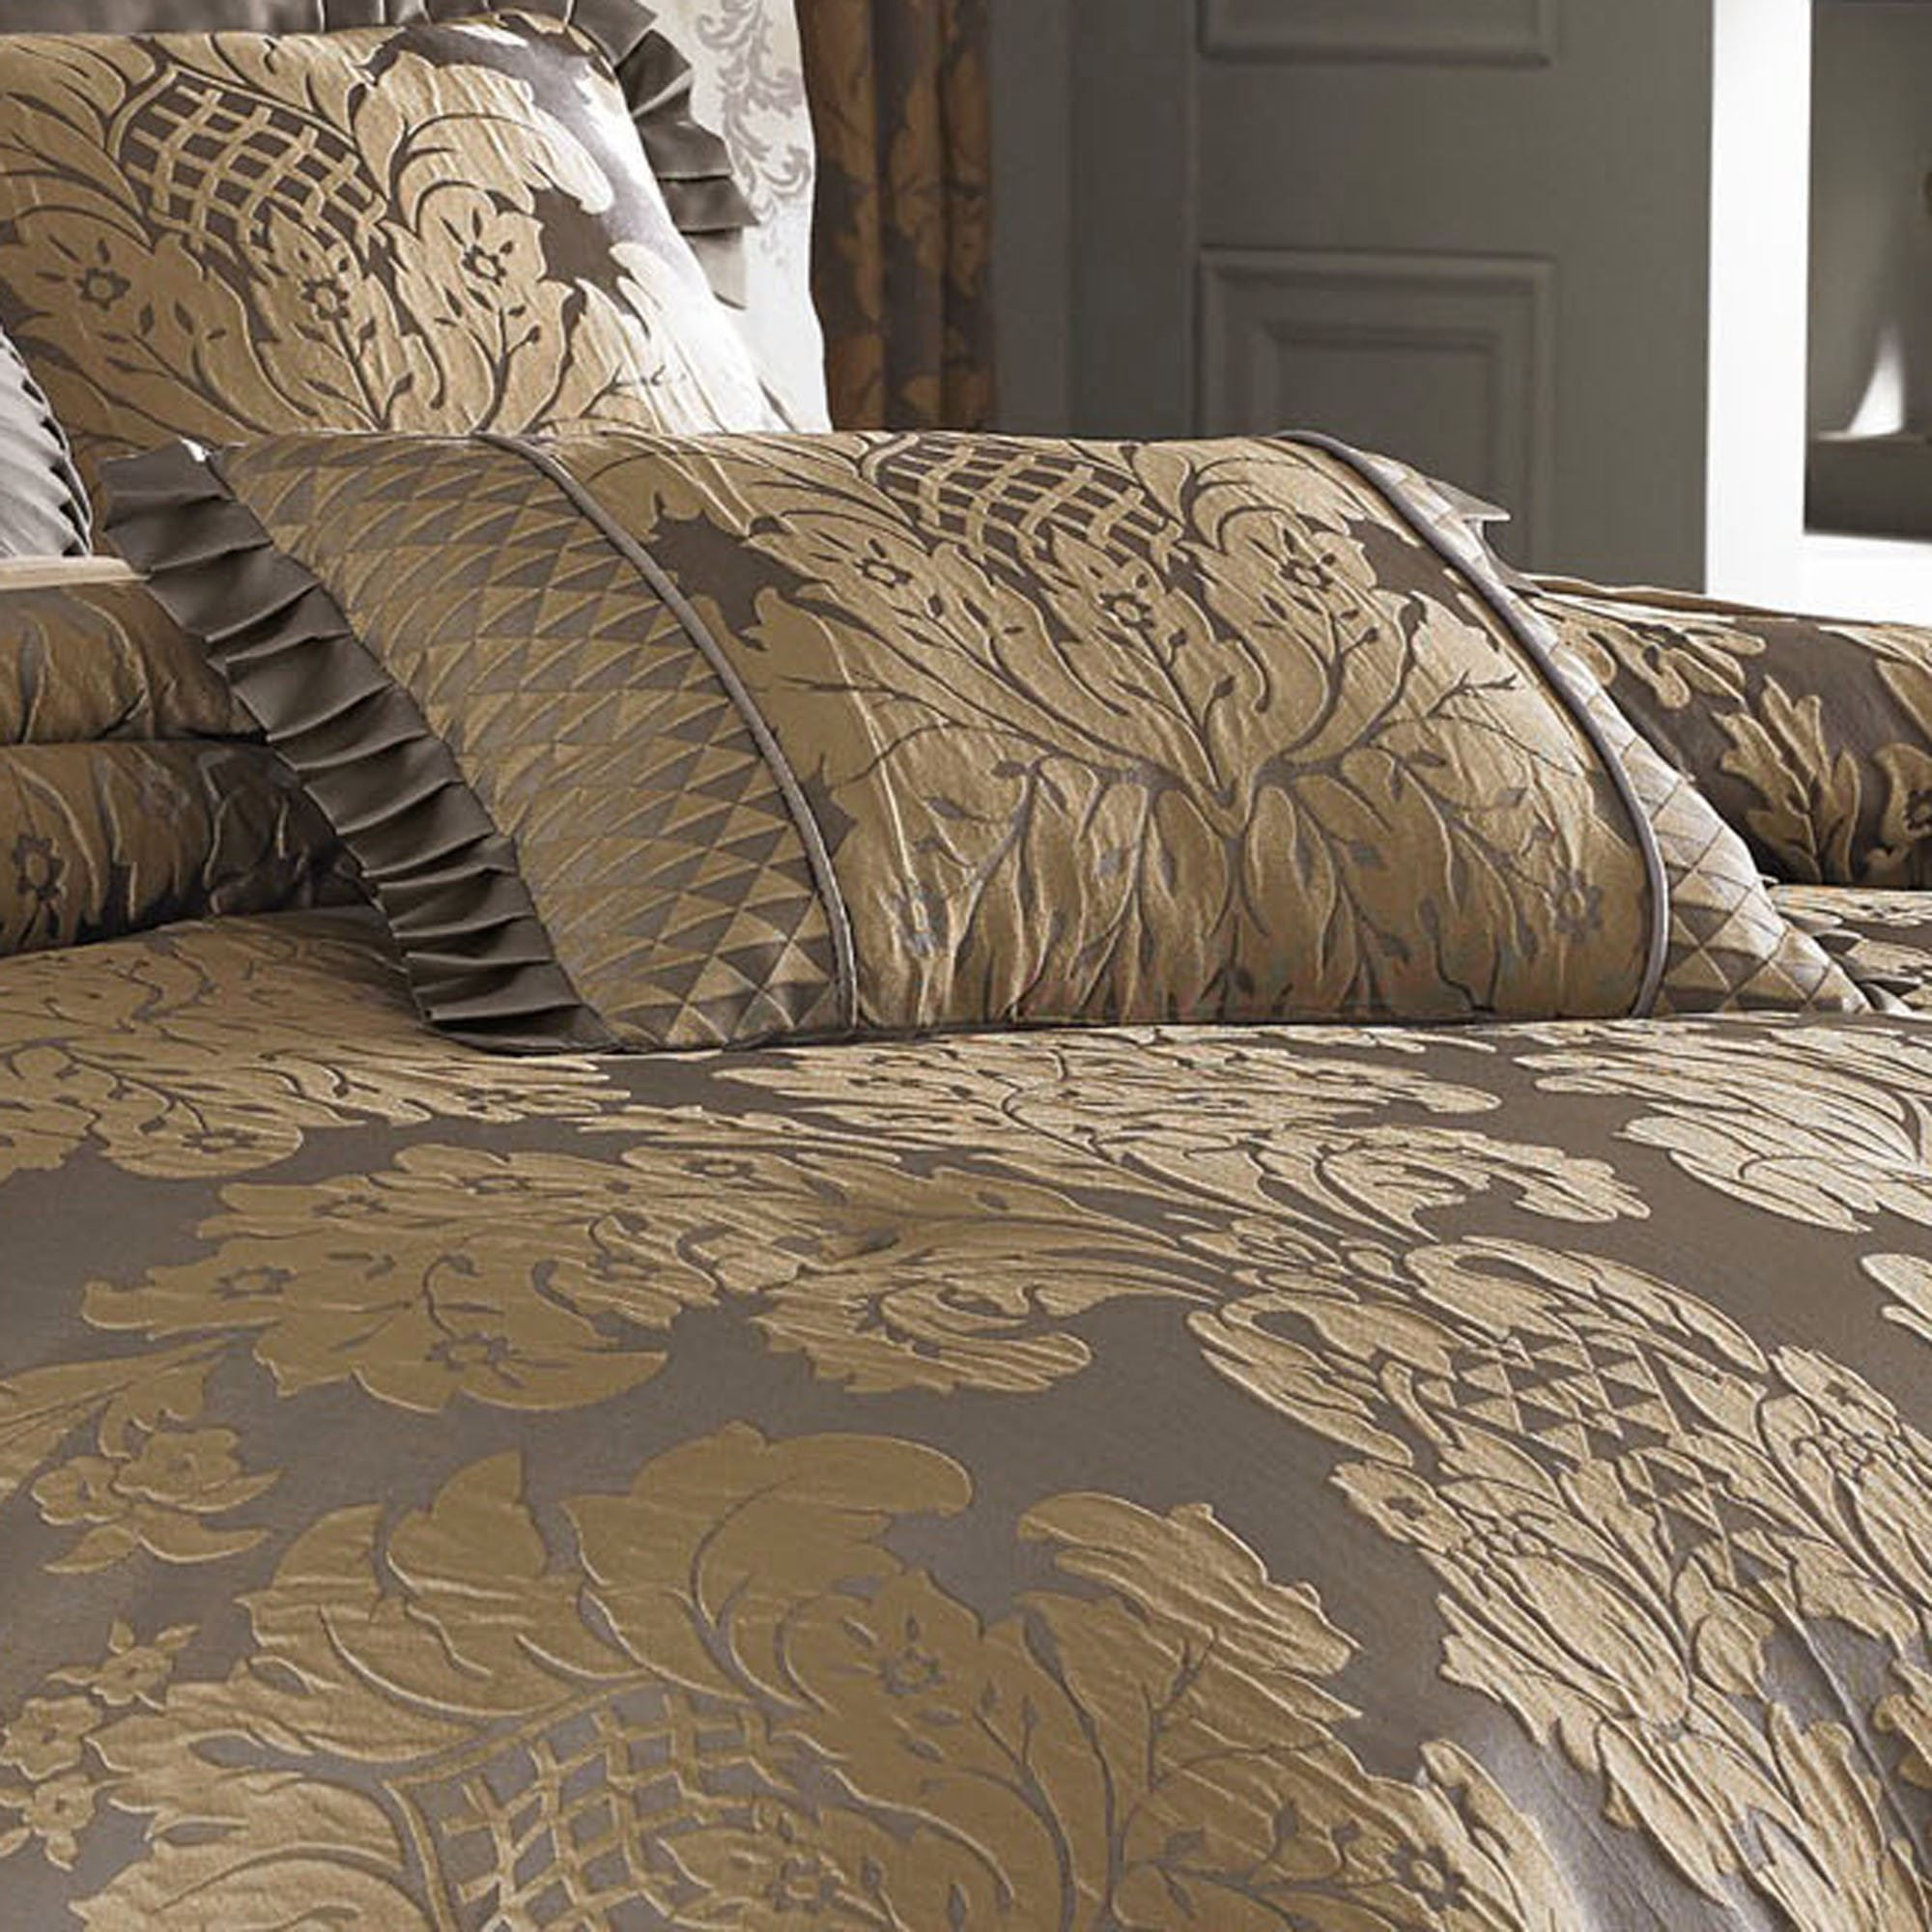 Melbourne Damask forter Bedding by J Queen New York